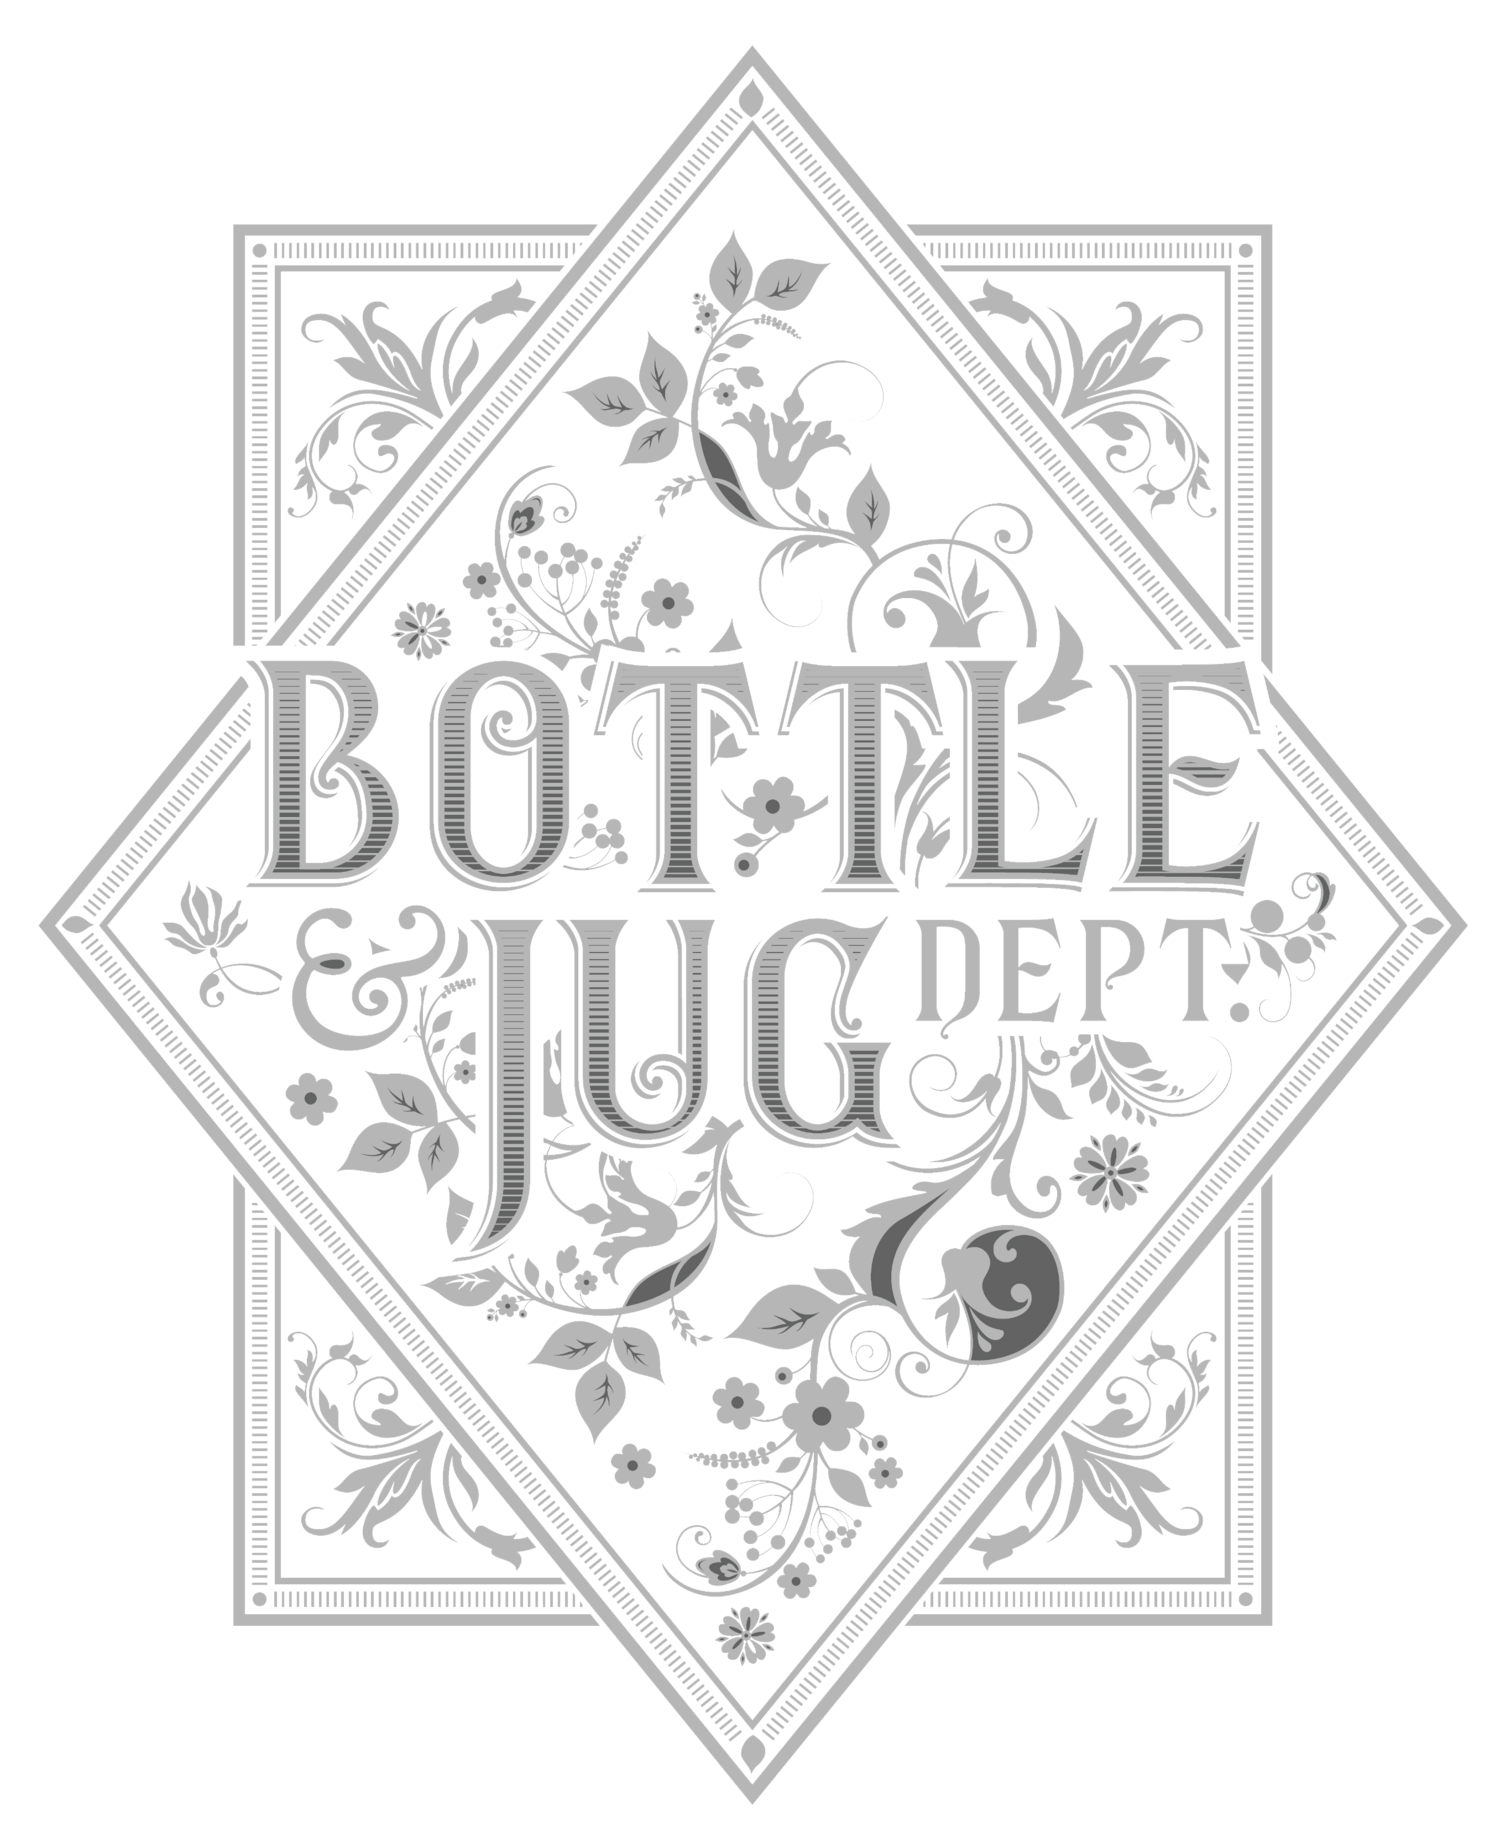 Bottle and Jug Dept | Worthing | Sussex Ale, Craft Beer, Sparkling Wine